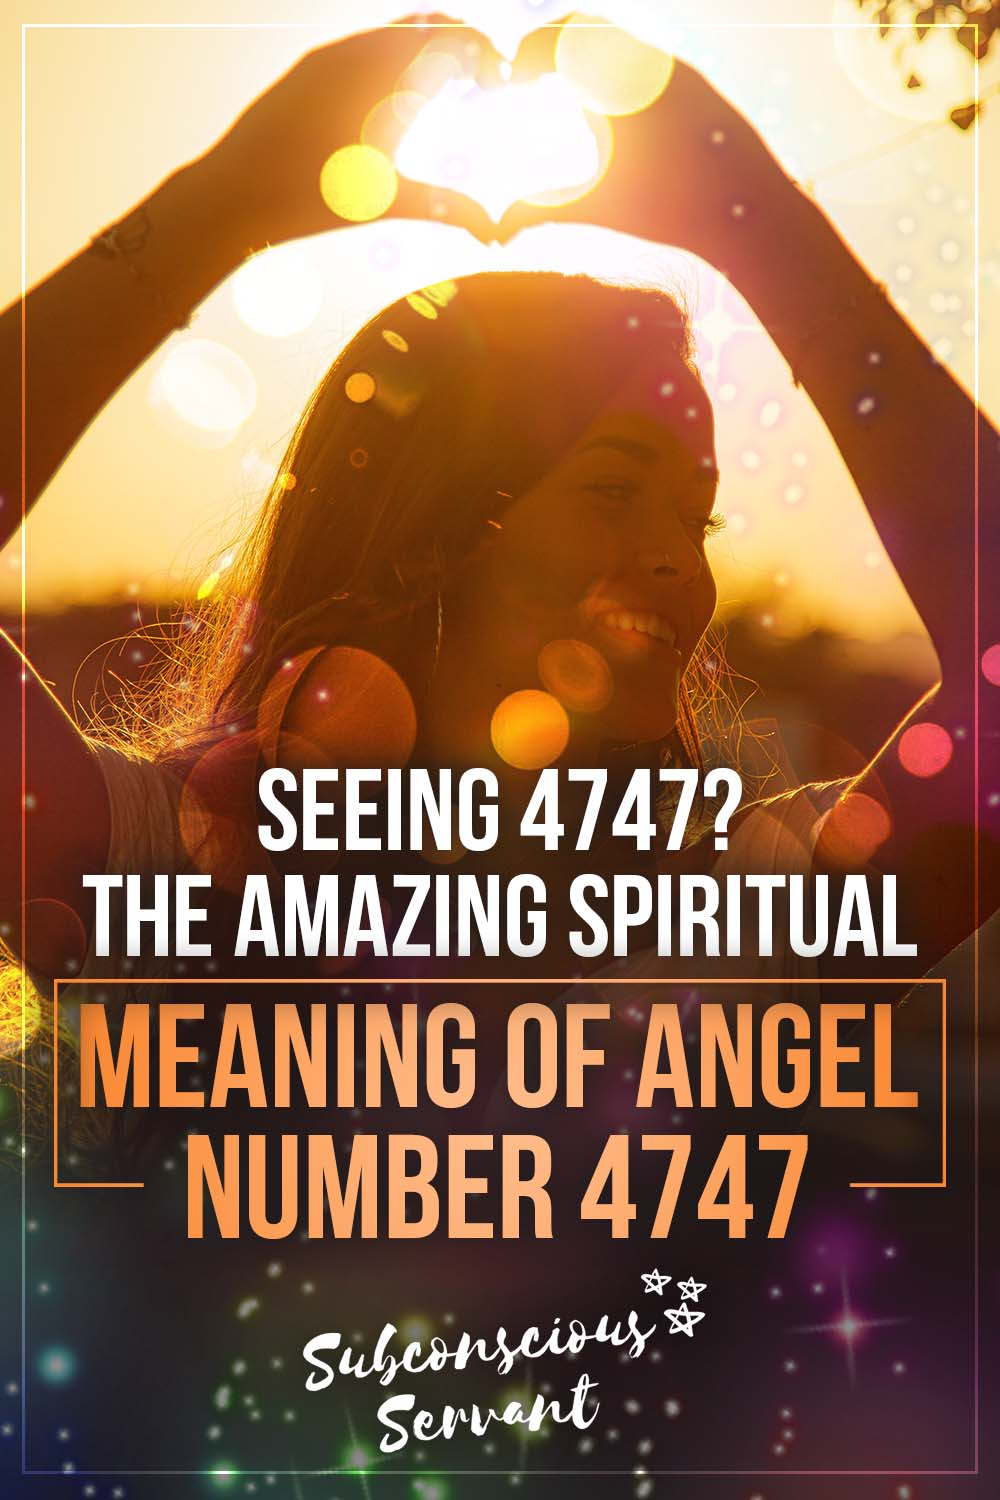 Seeing 4747? The Amazing Spiritual Meaning Of Angel Number 4747